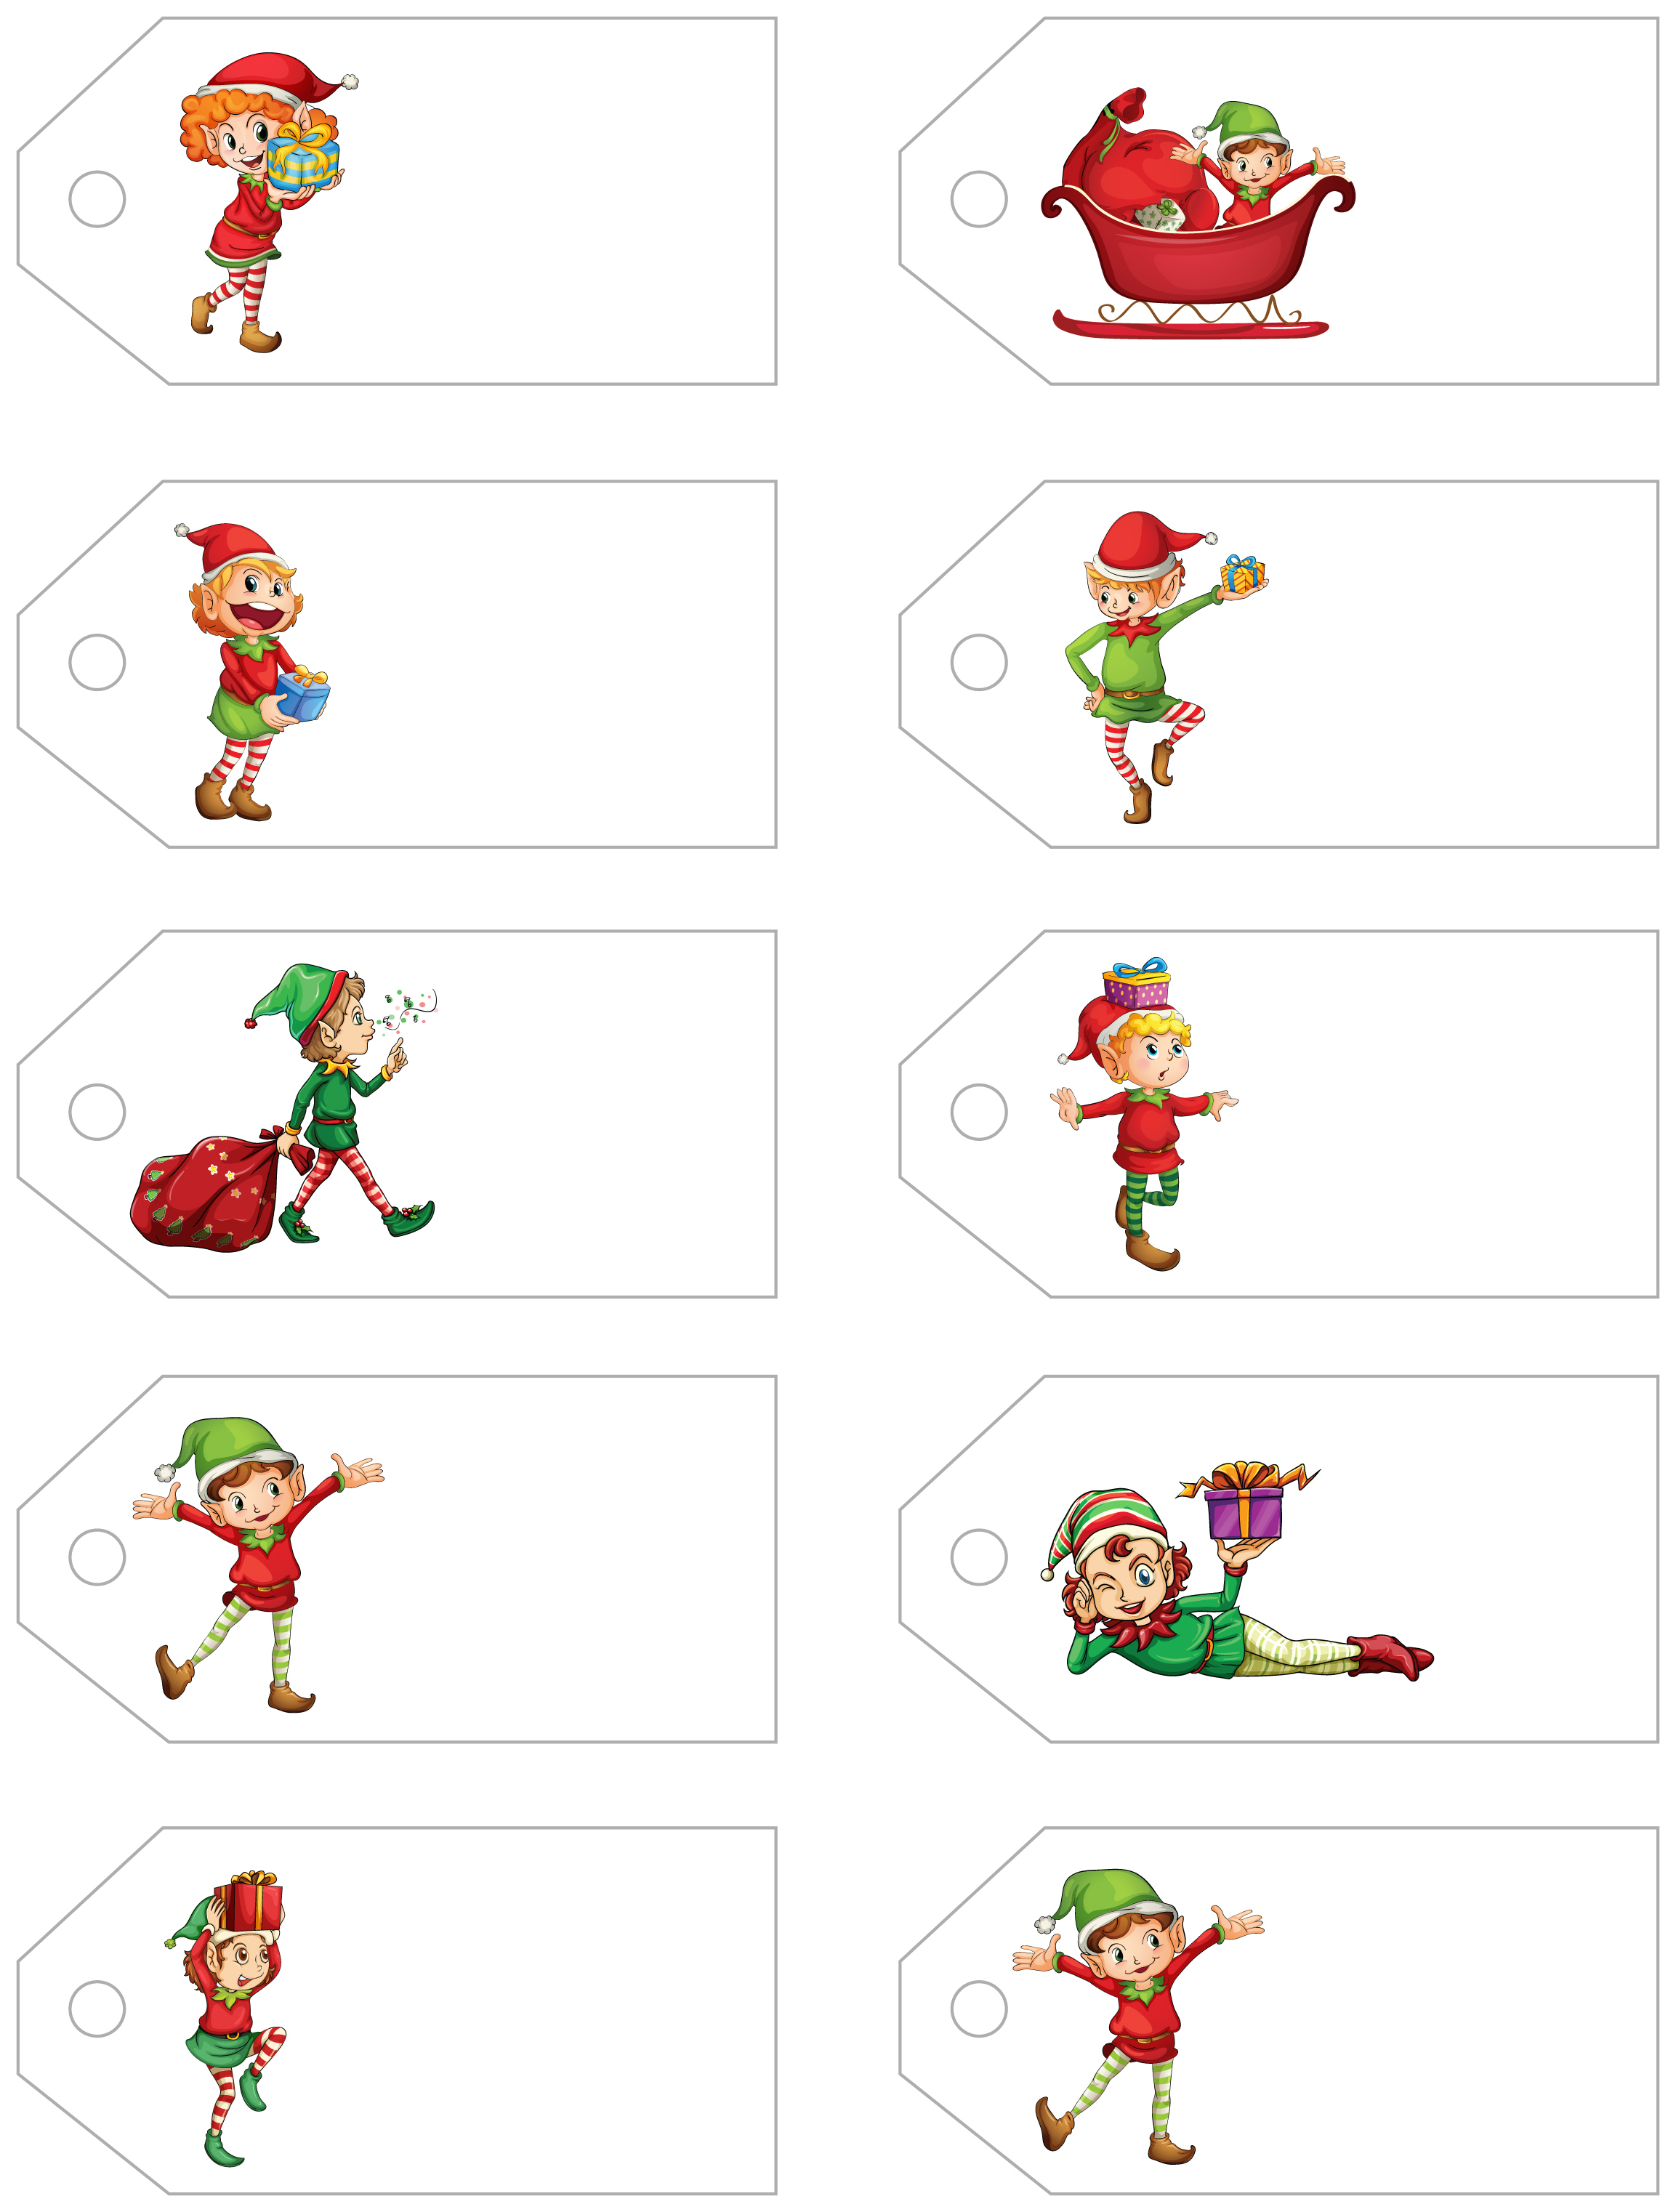 Santa's Little Gift To You! Free Printable Gift Tags And Labels - Free Printable Toe Tags